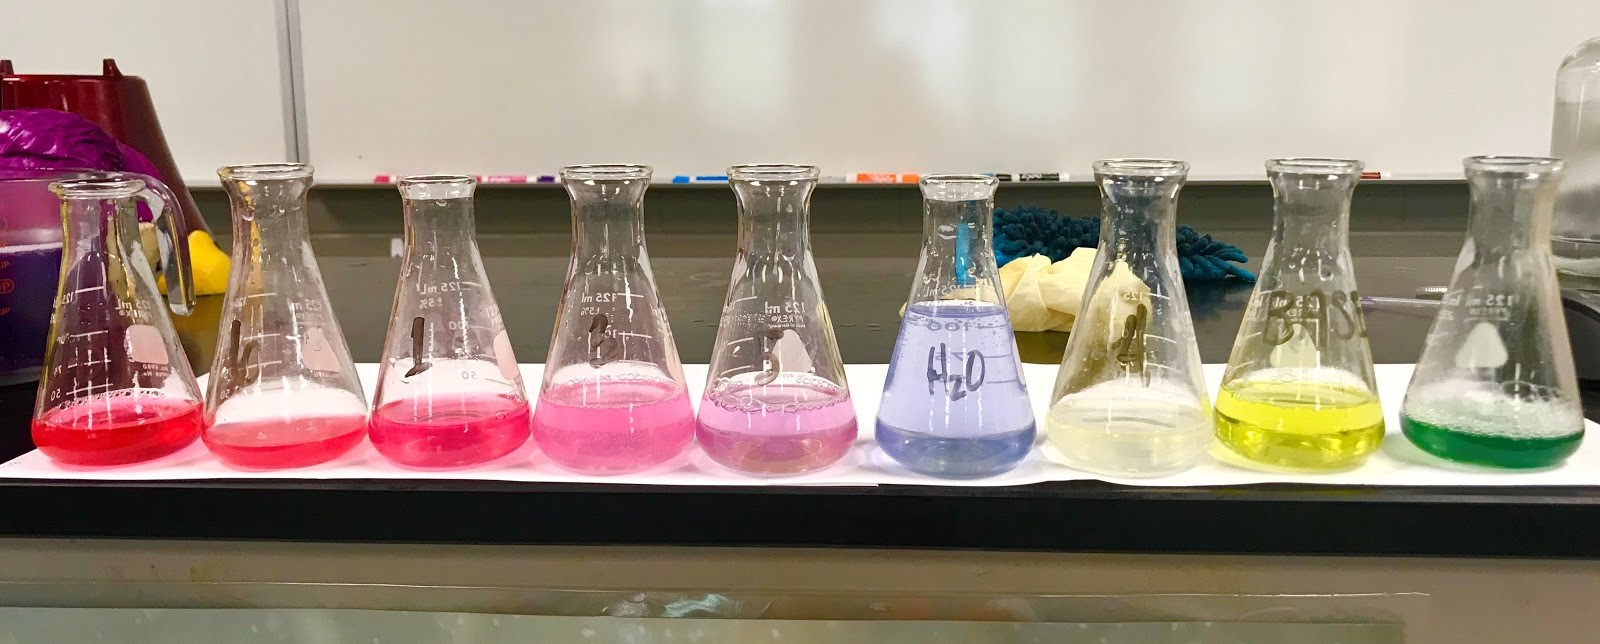 photograph of nine chemistry flasks, each with a different color liquid, on a desk